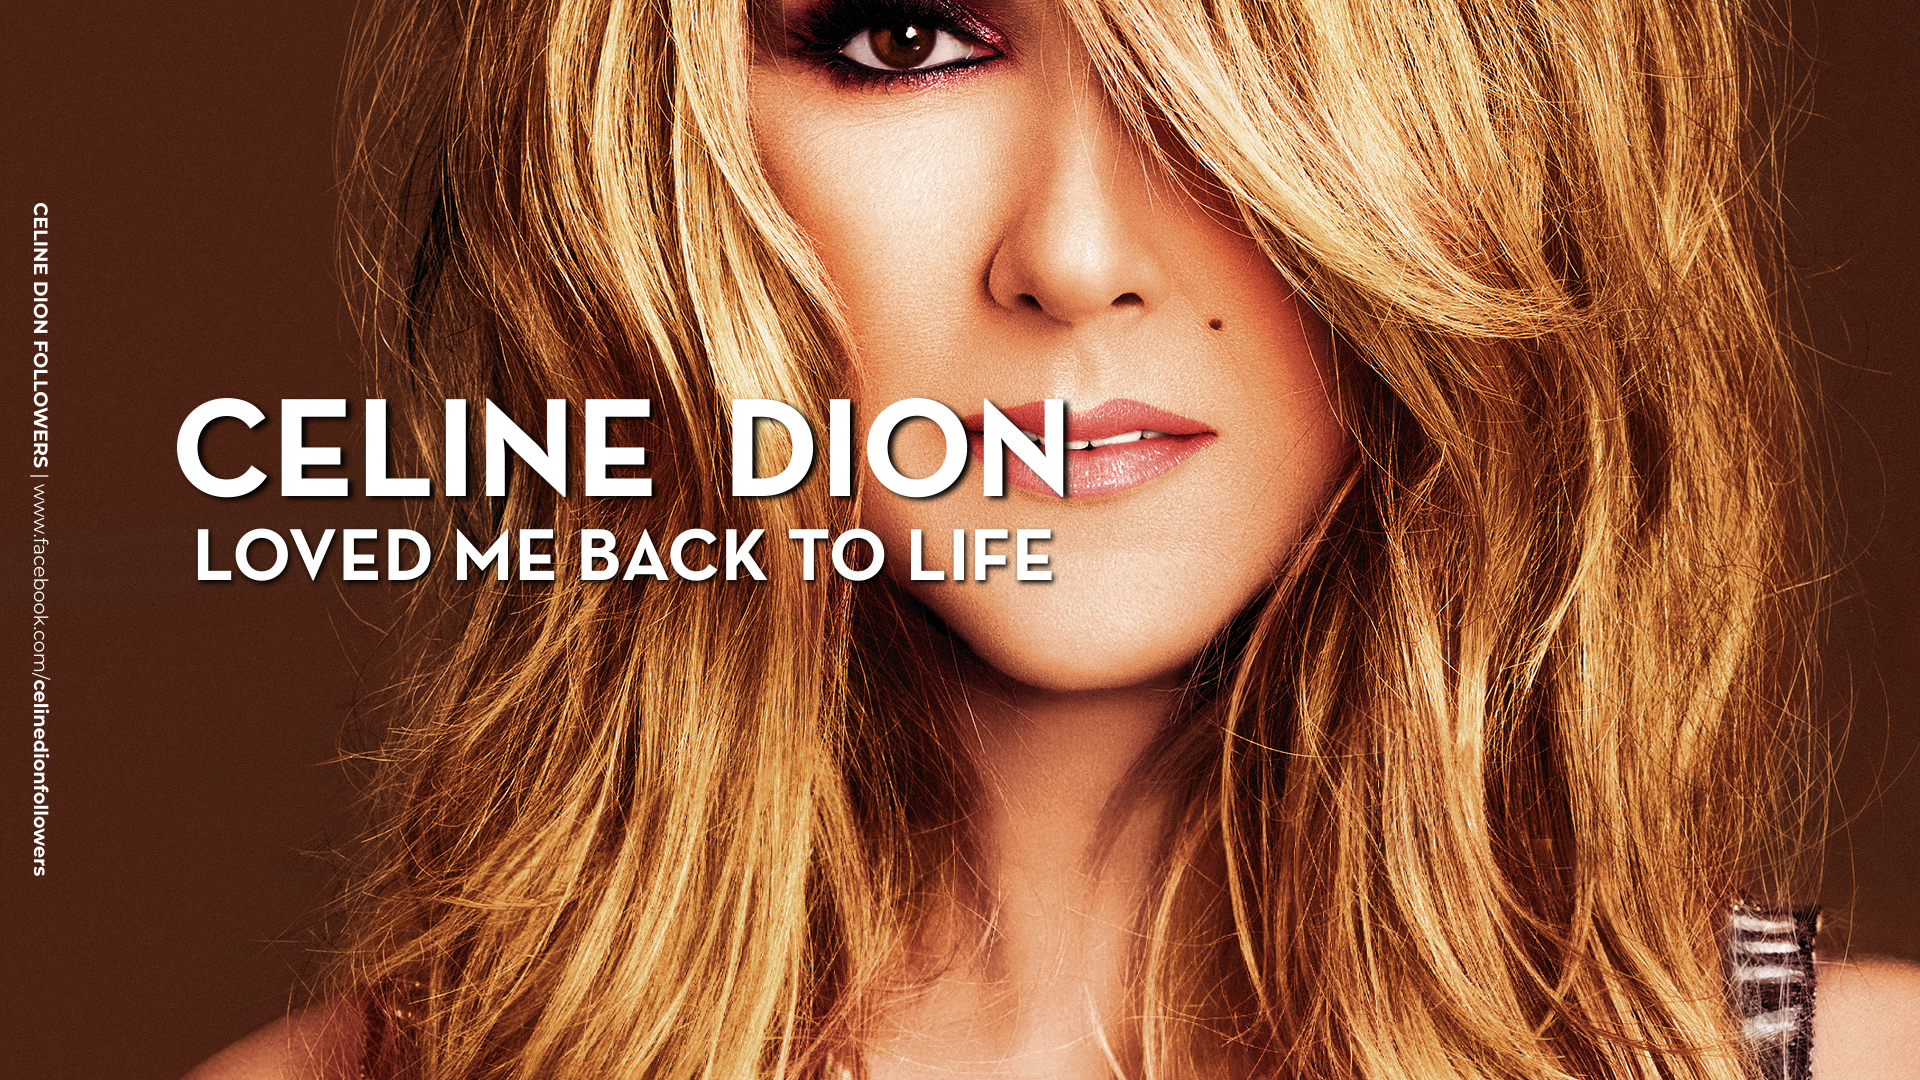 LOVED ME BACK TO LIFE HD WALLPAPER